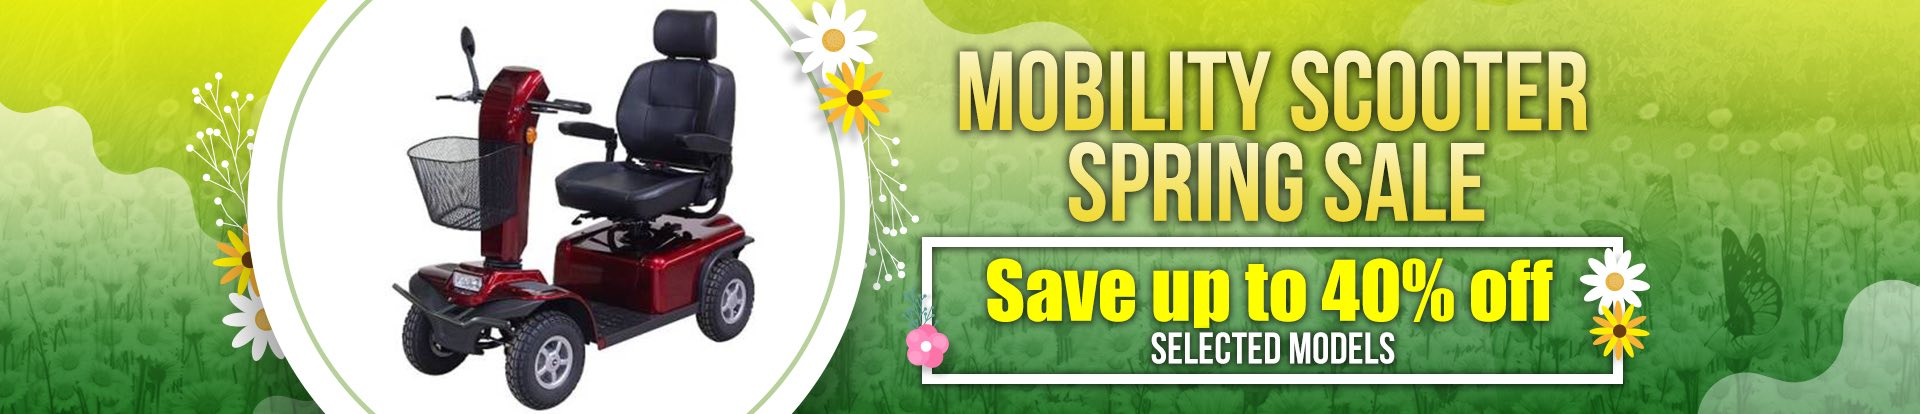 Lifestyle Mobility Scooter Spring Sale